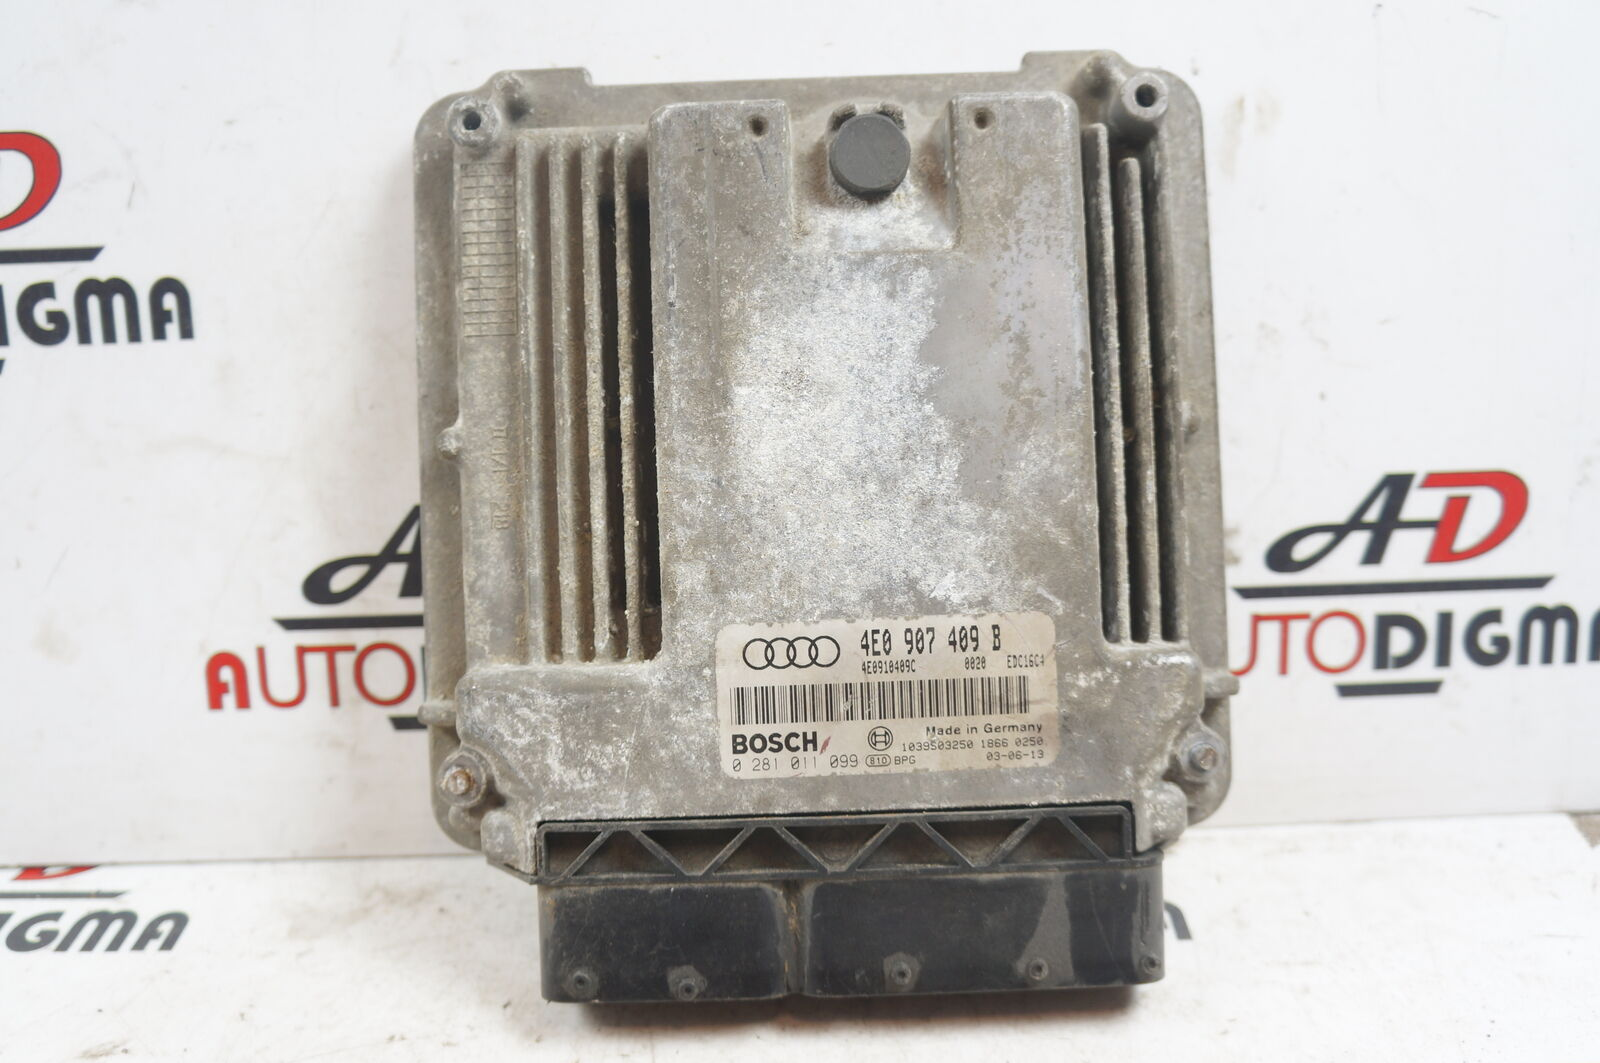 AUDI A8 (4E, D3) Engine Control Unit 4E0907409B